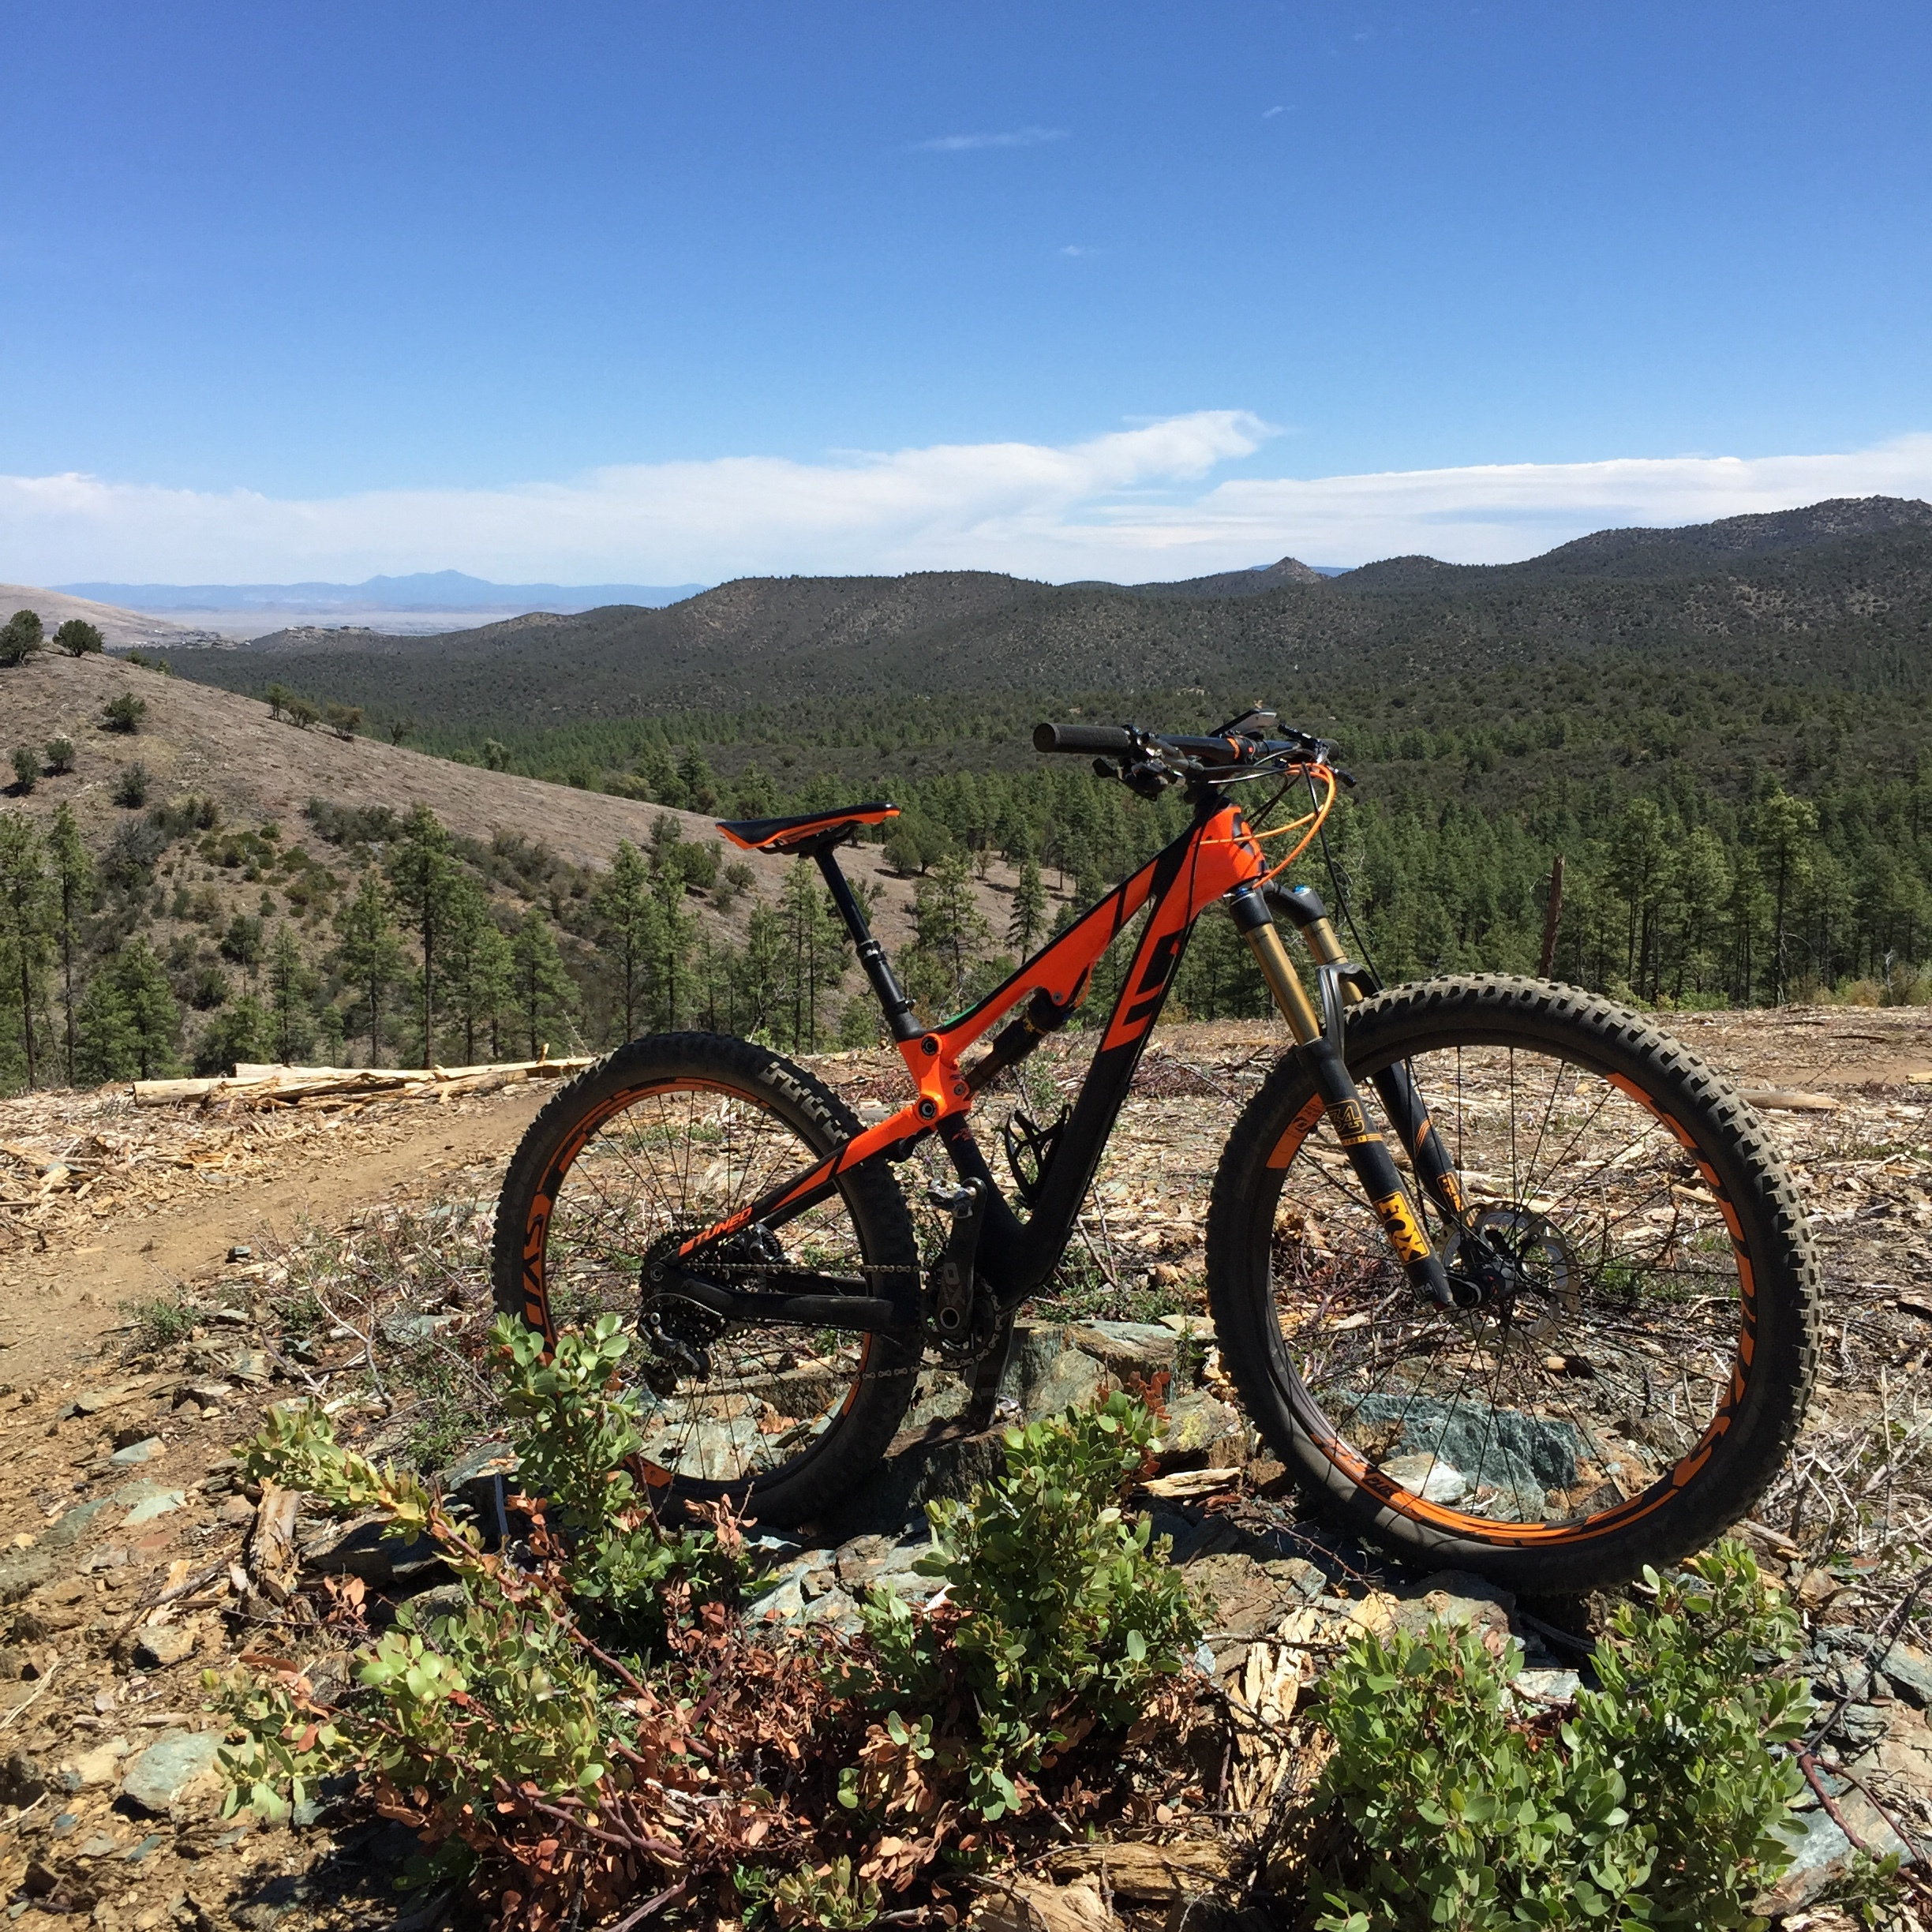 The plus size tires did not get old, providing tons of traction up any climb.